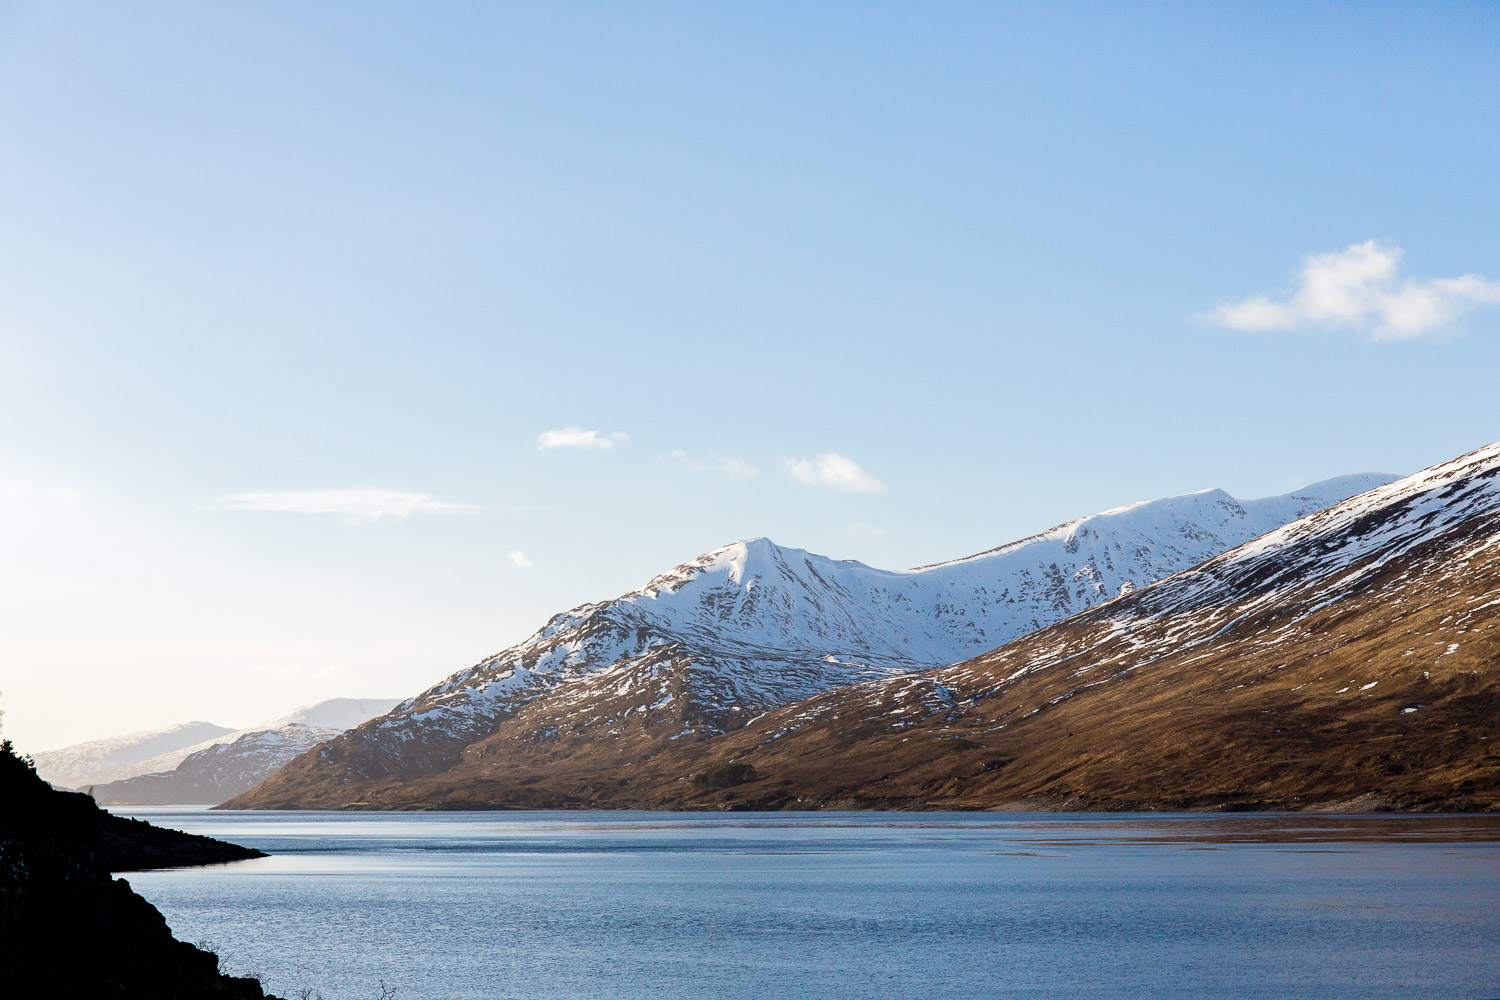 Winter in Scotland can be stunningly beautiful with crystal clear skies and snow topped mountains.